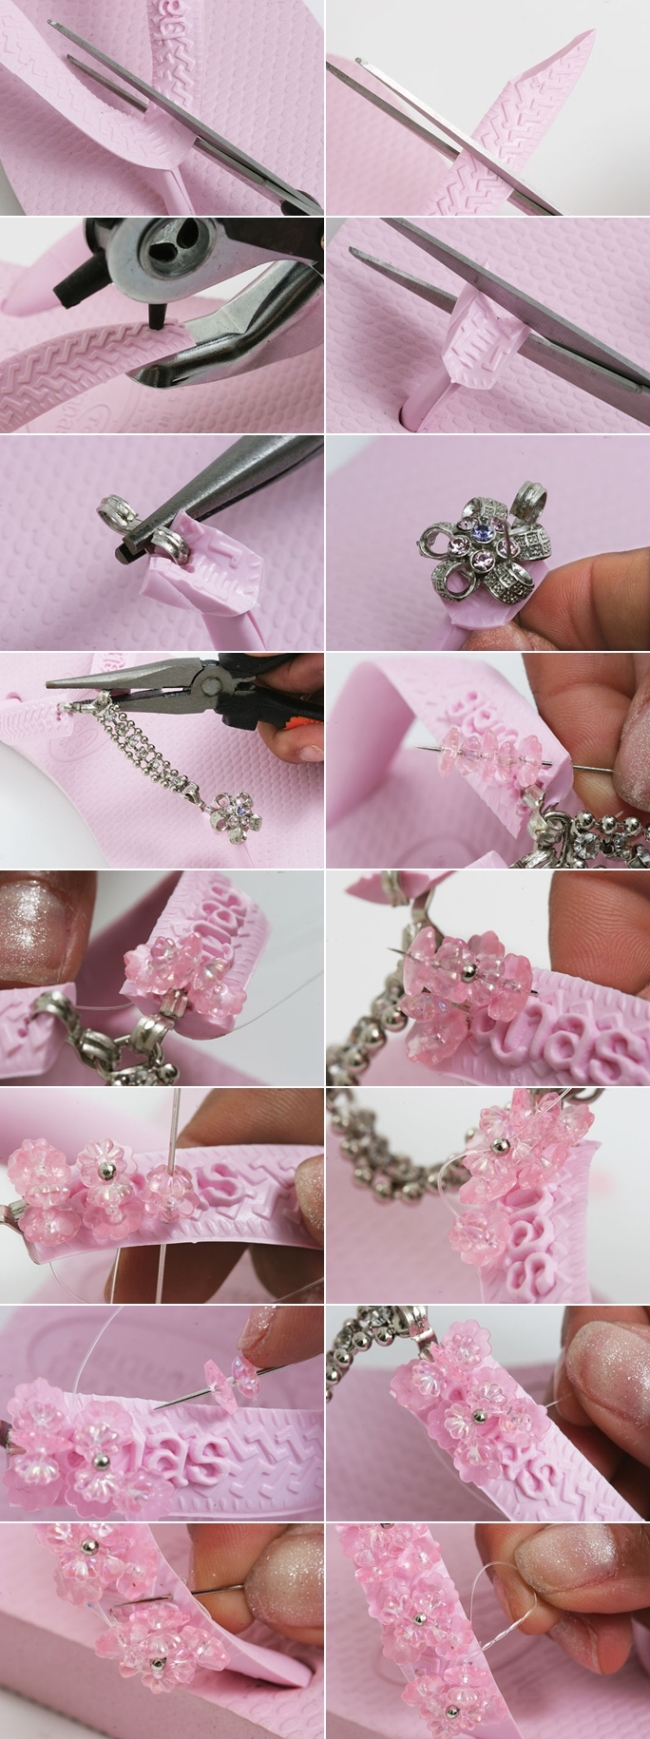 pink flip flops beads sewing embellishments tutorial